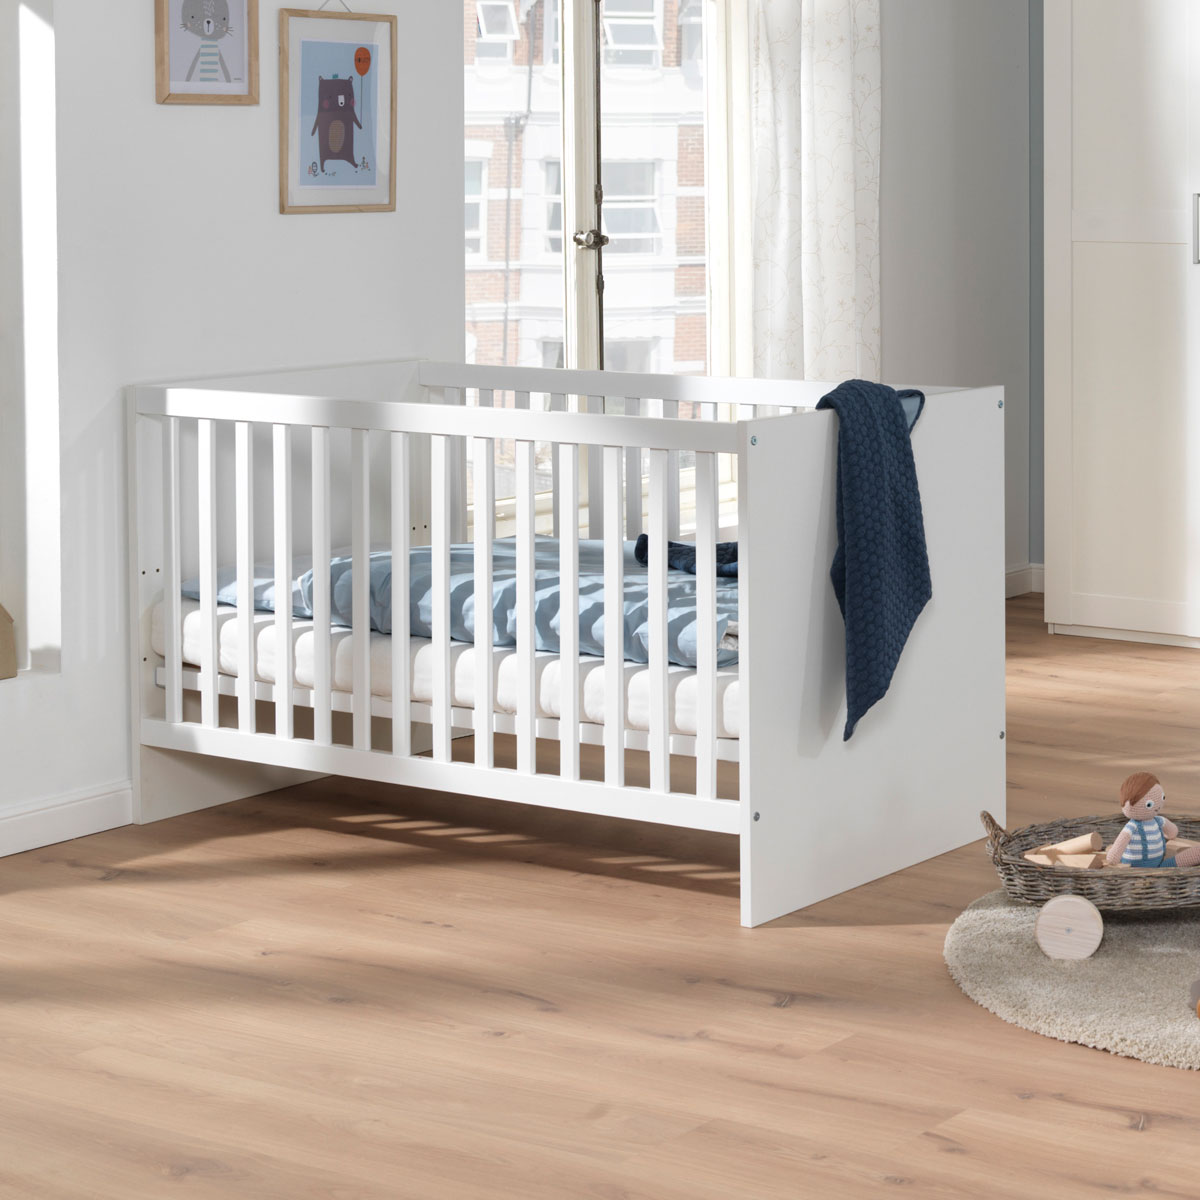 Welle Kinderzimmer WellemÖbel Country Kinderzimmer Auf Babyonlineshop De